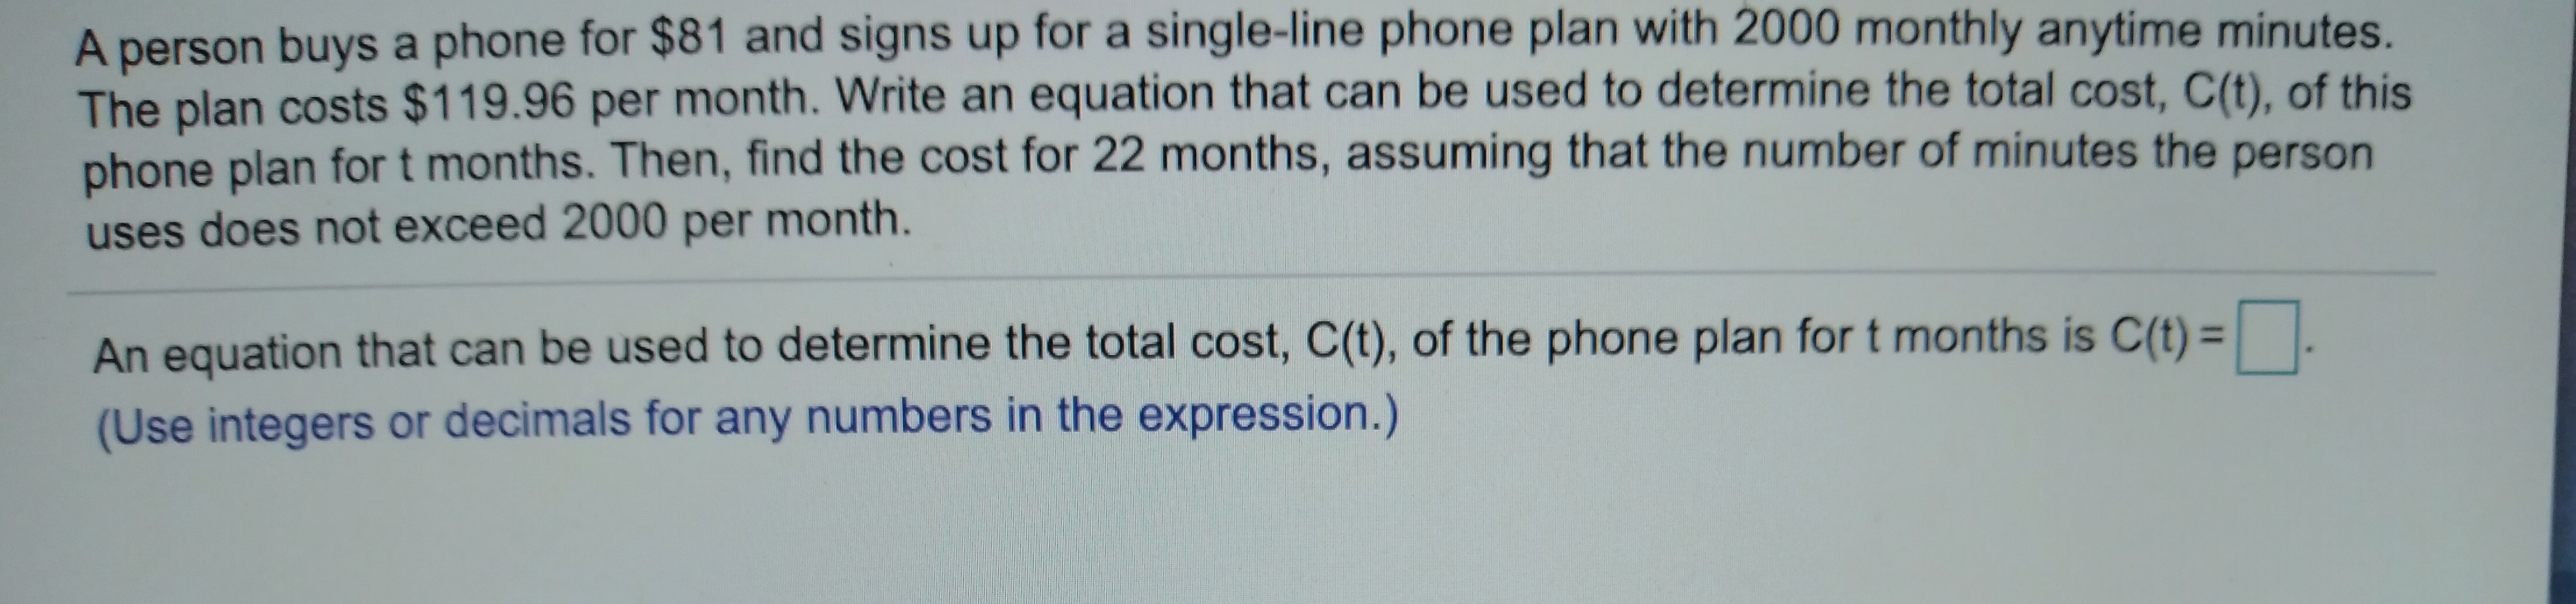 A person buys a phone for $81 and signs up for a single-line phone plan with 2000 monthly anytime minutes. The plan costs $119.96 per month. Write an equation that can be used to determine the total cost, C(t), of this phone plan for t months. Then, find the cost for 22 months, assuming that the number of minutes the person uses does not exceed 2000 per month. An equation that can be used to determine the total cost, C(t), of the phone plan for t months is C(t)    . (Use integers or decimals for any numbers in the expression.)